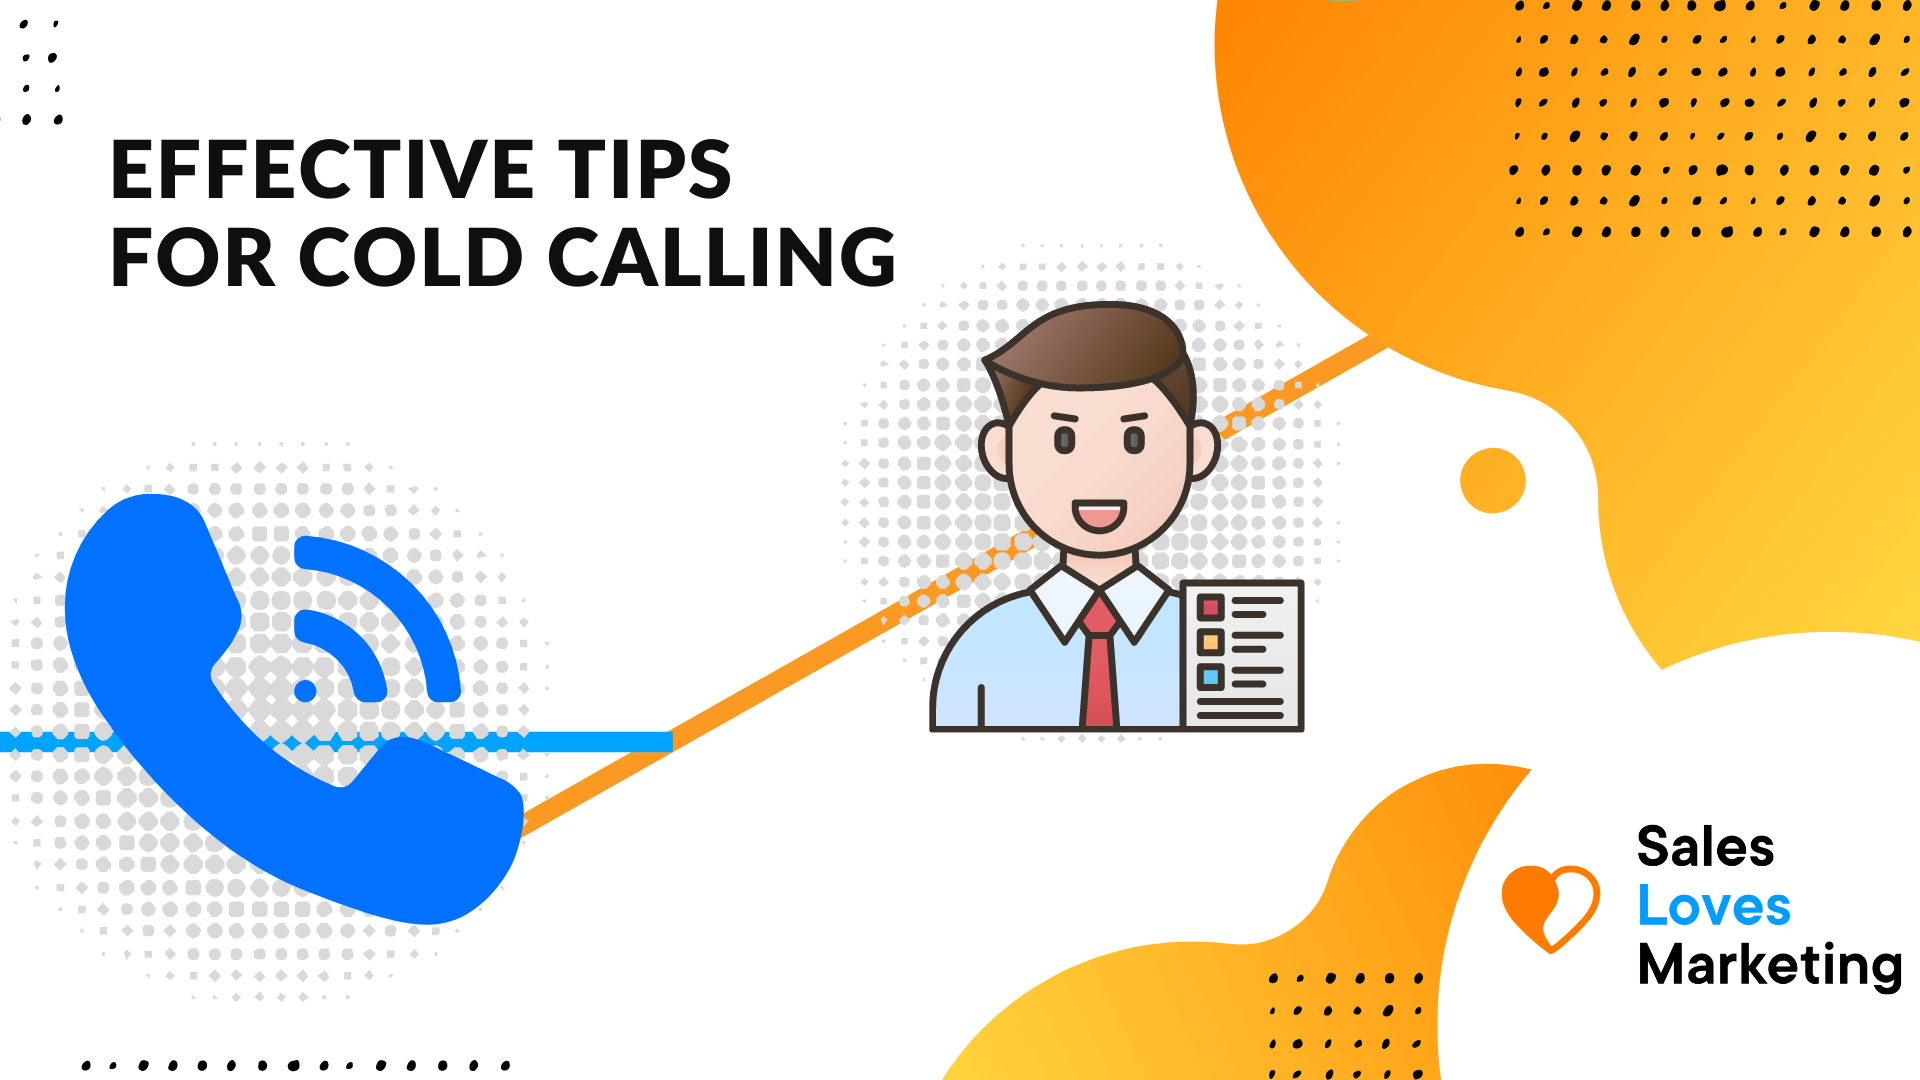 See effective tips on how to do cold calling and keep hitting your sales numbers